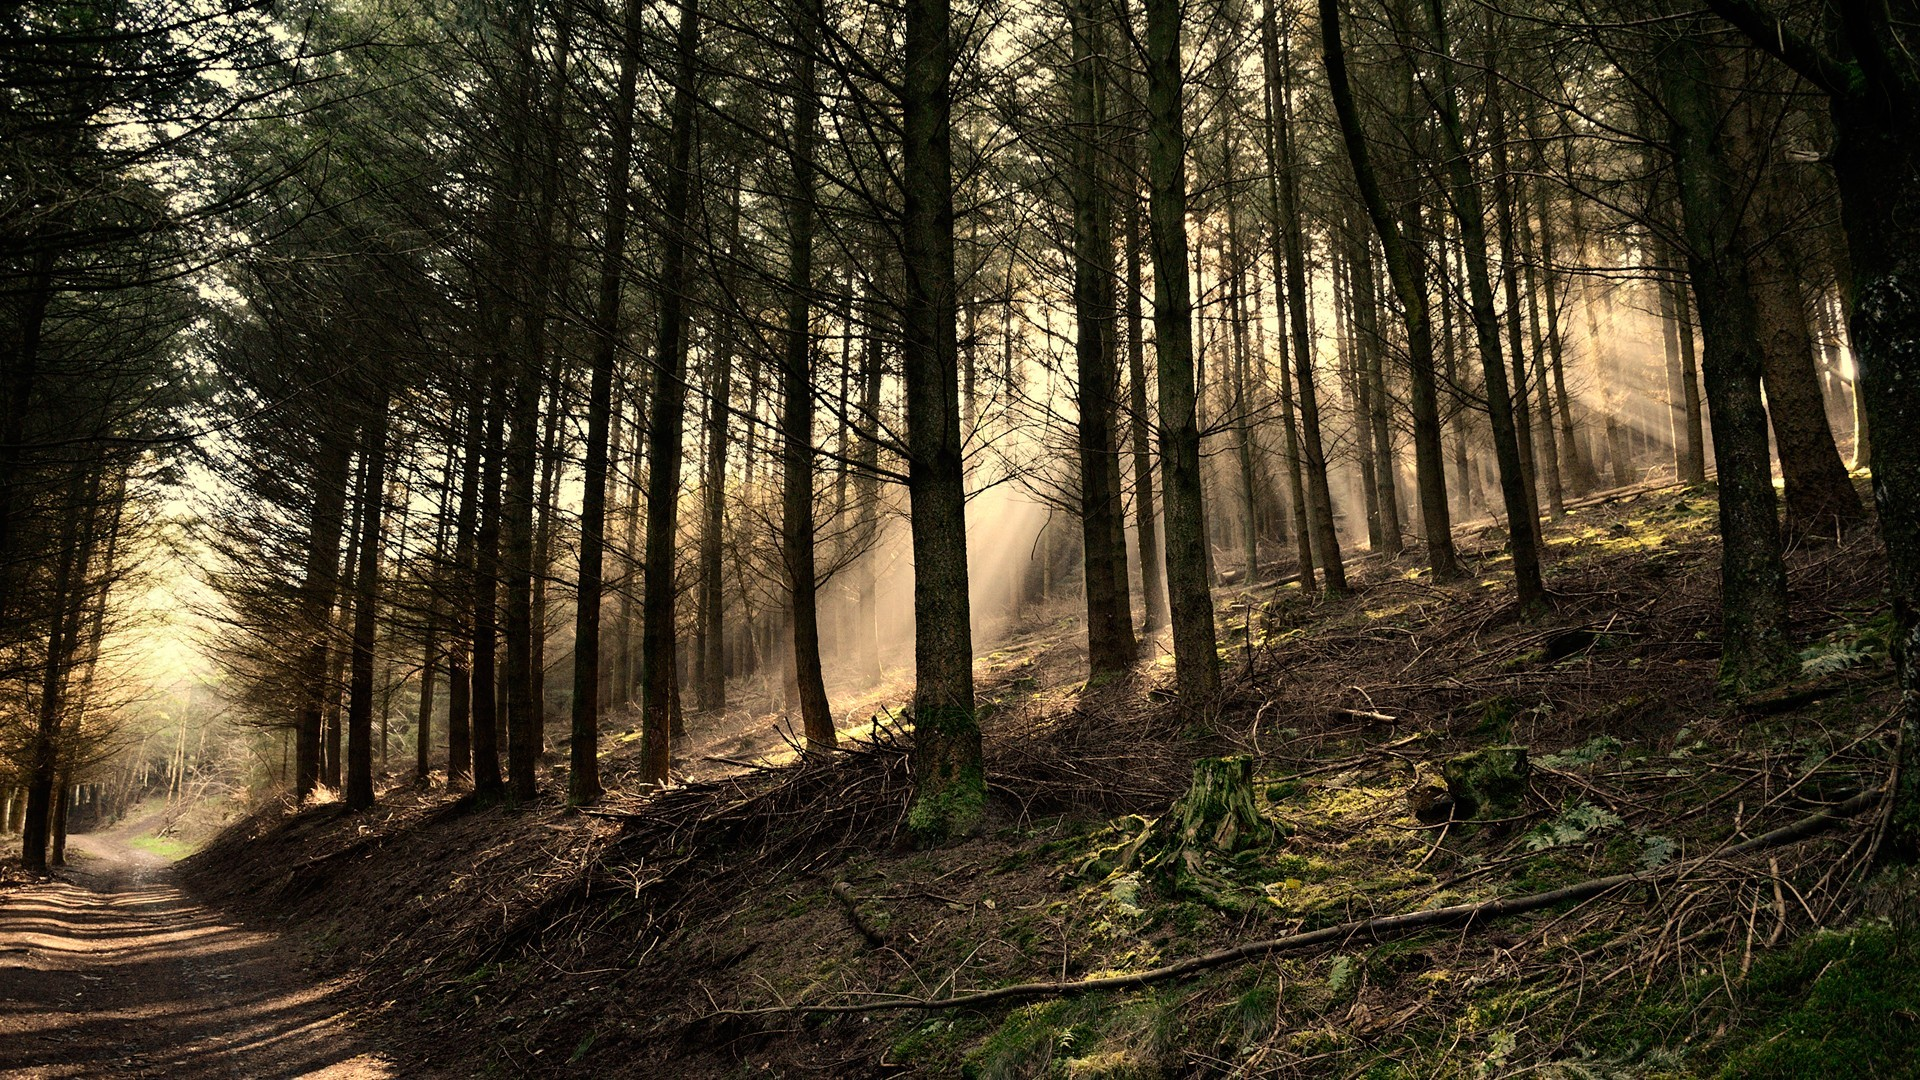 Forestry artistic natural scenery HD Wallpaper